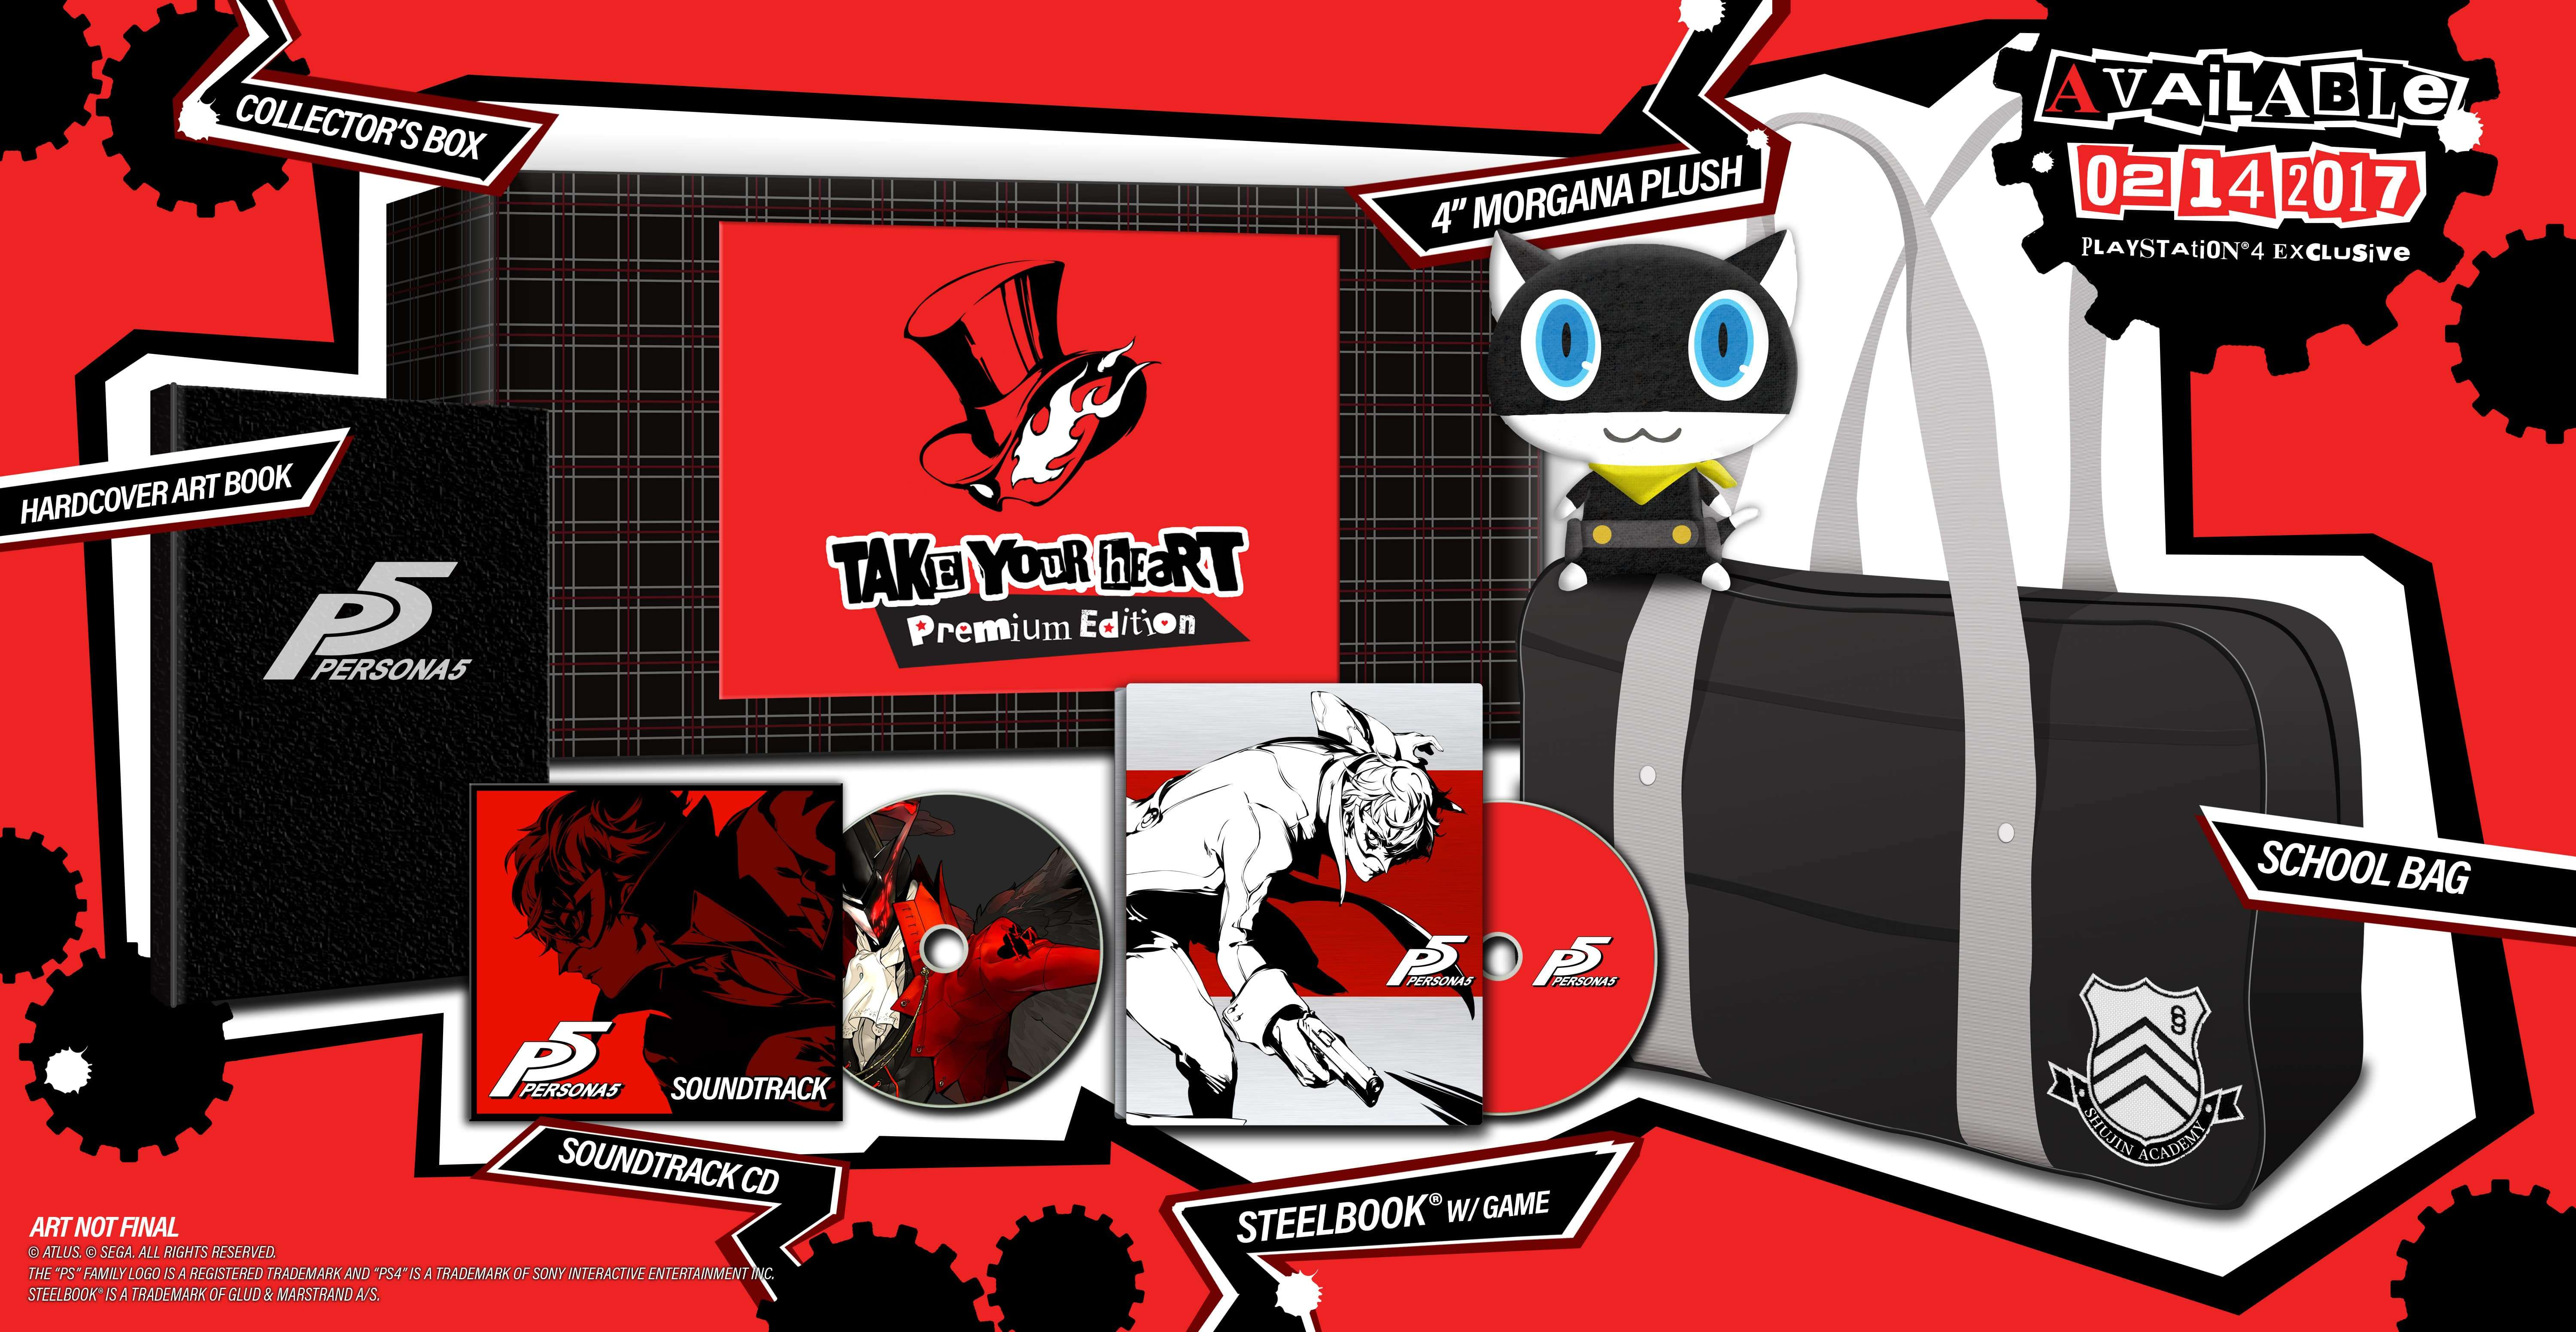 Persona 5 North American Release Date Confirmed for February